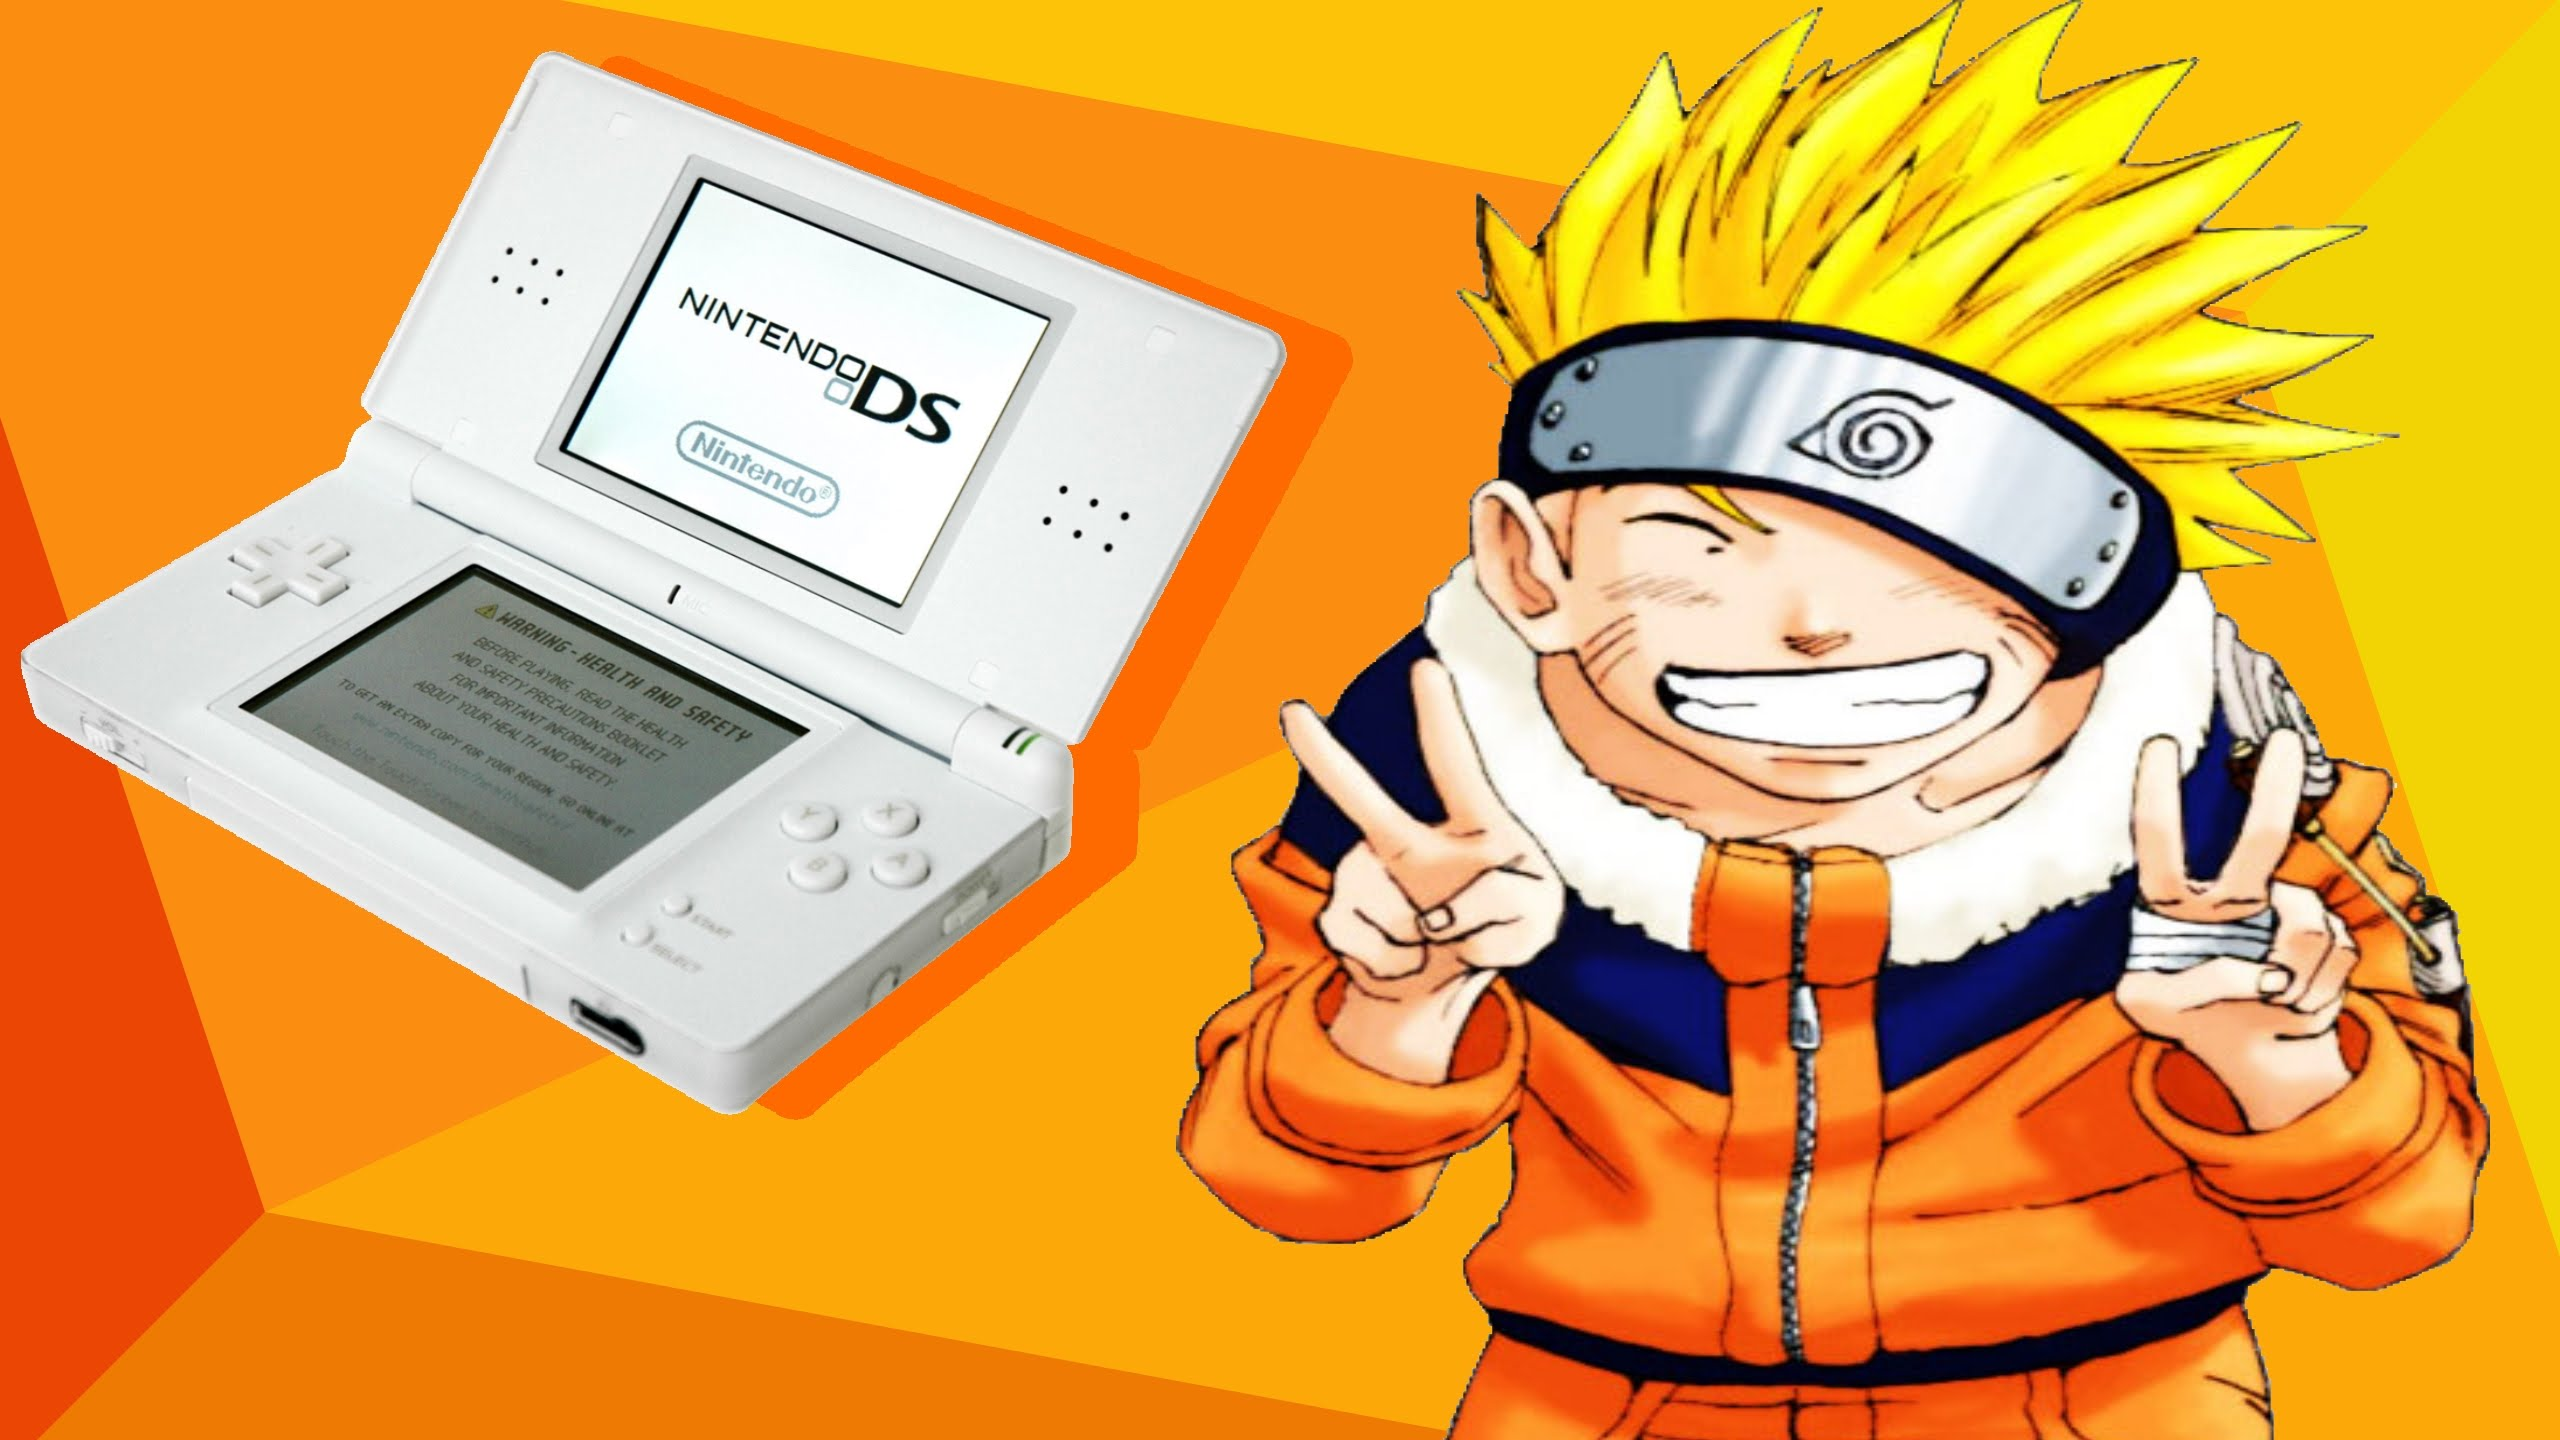 Covered clipart naruto game For All Nintendo  Games